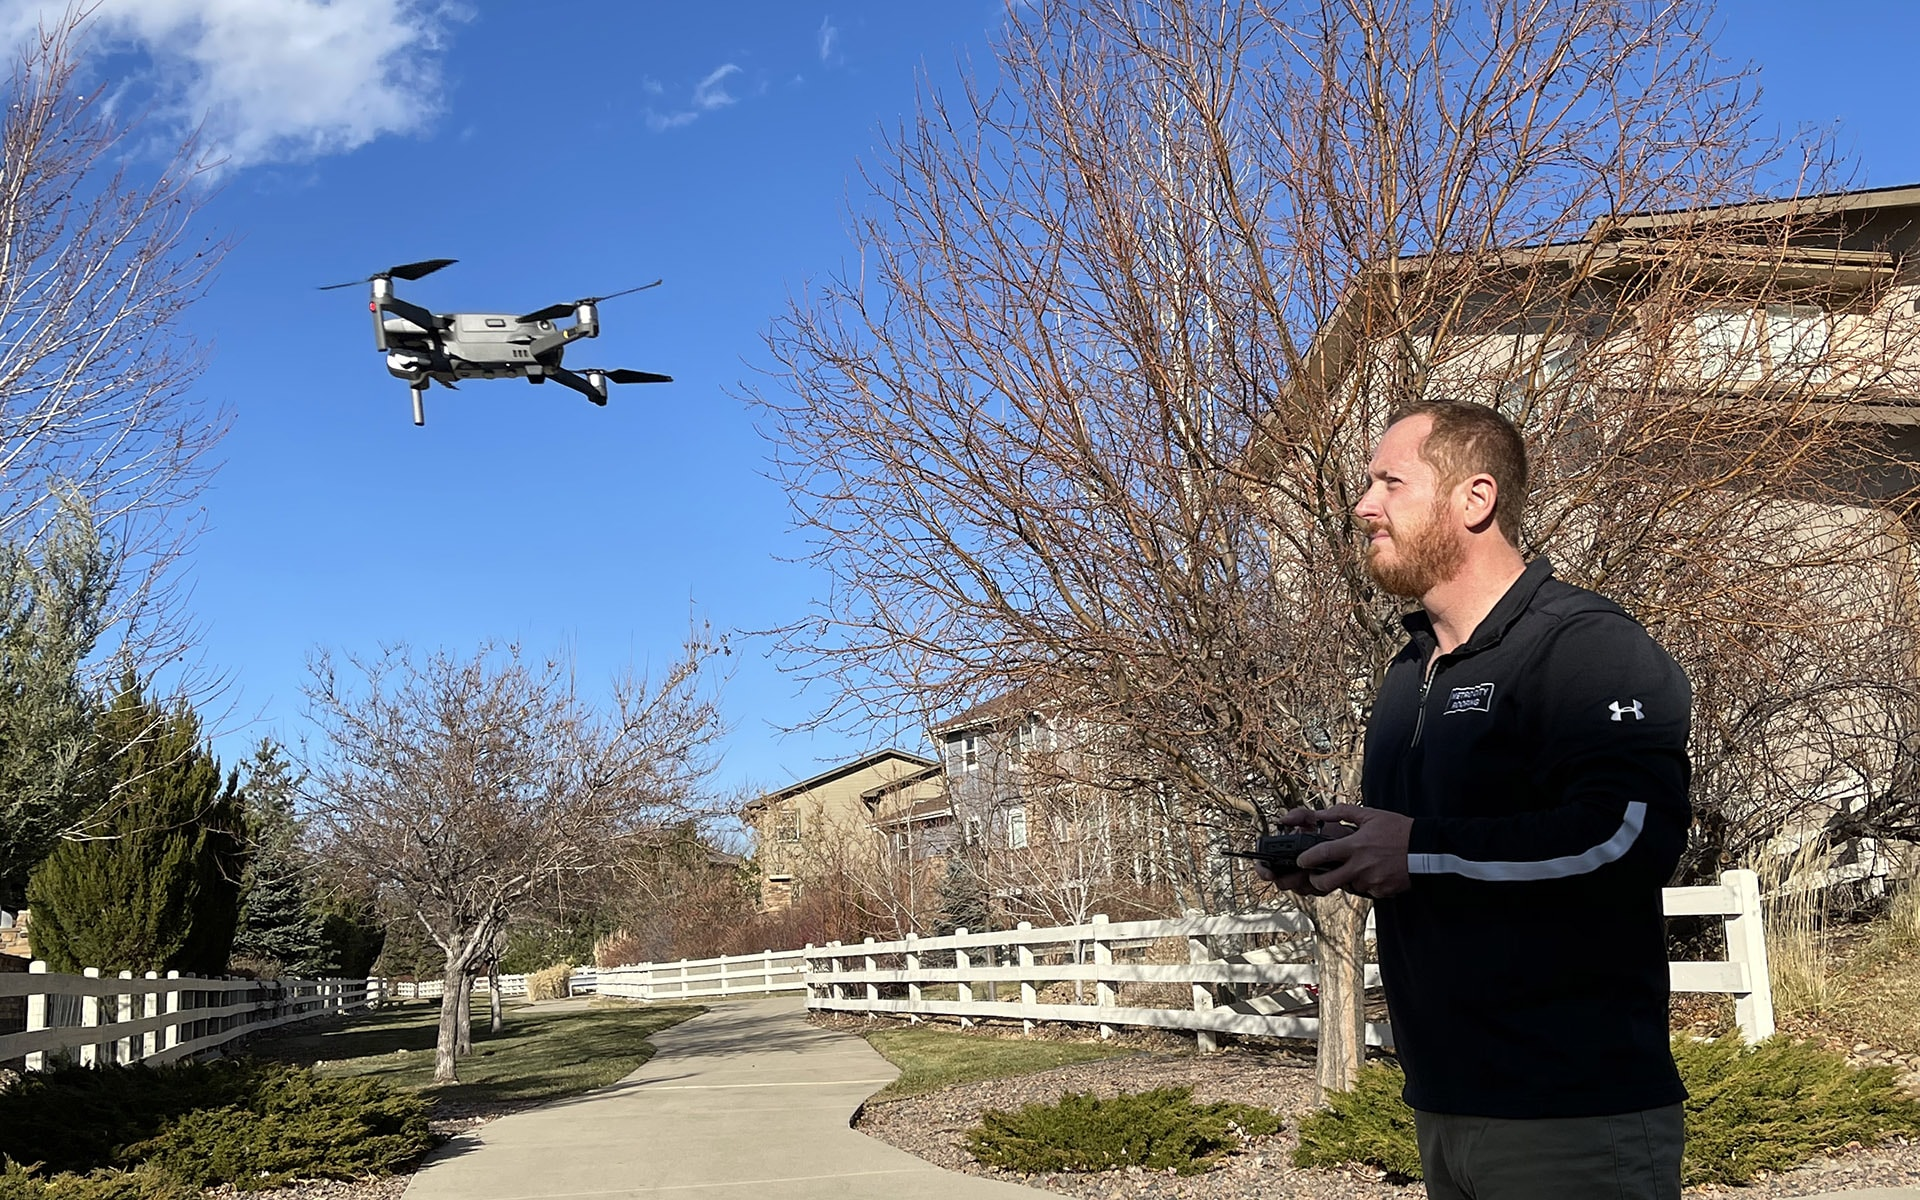 Metro City Roofing salesperson flying a drone to inspect a roof in Broomfield, Colorado